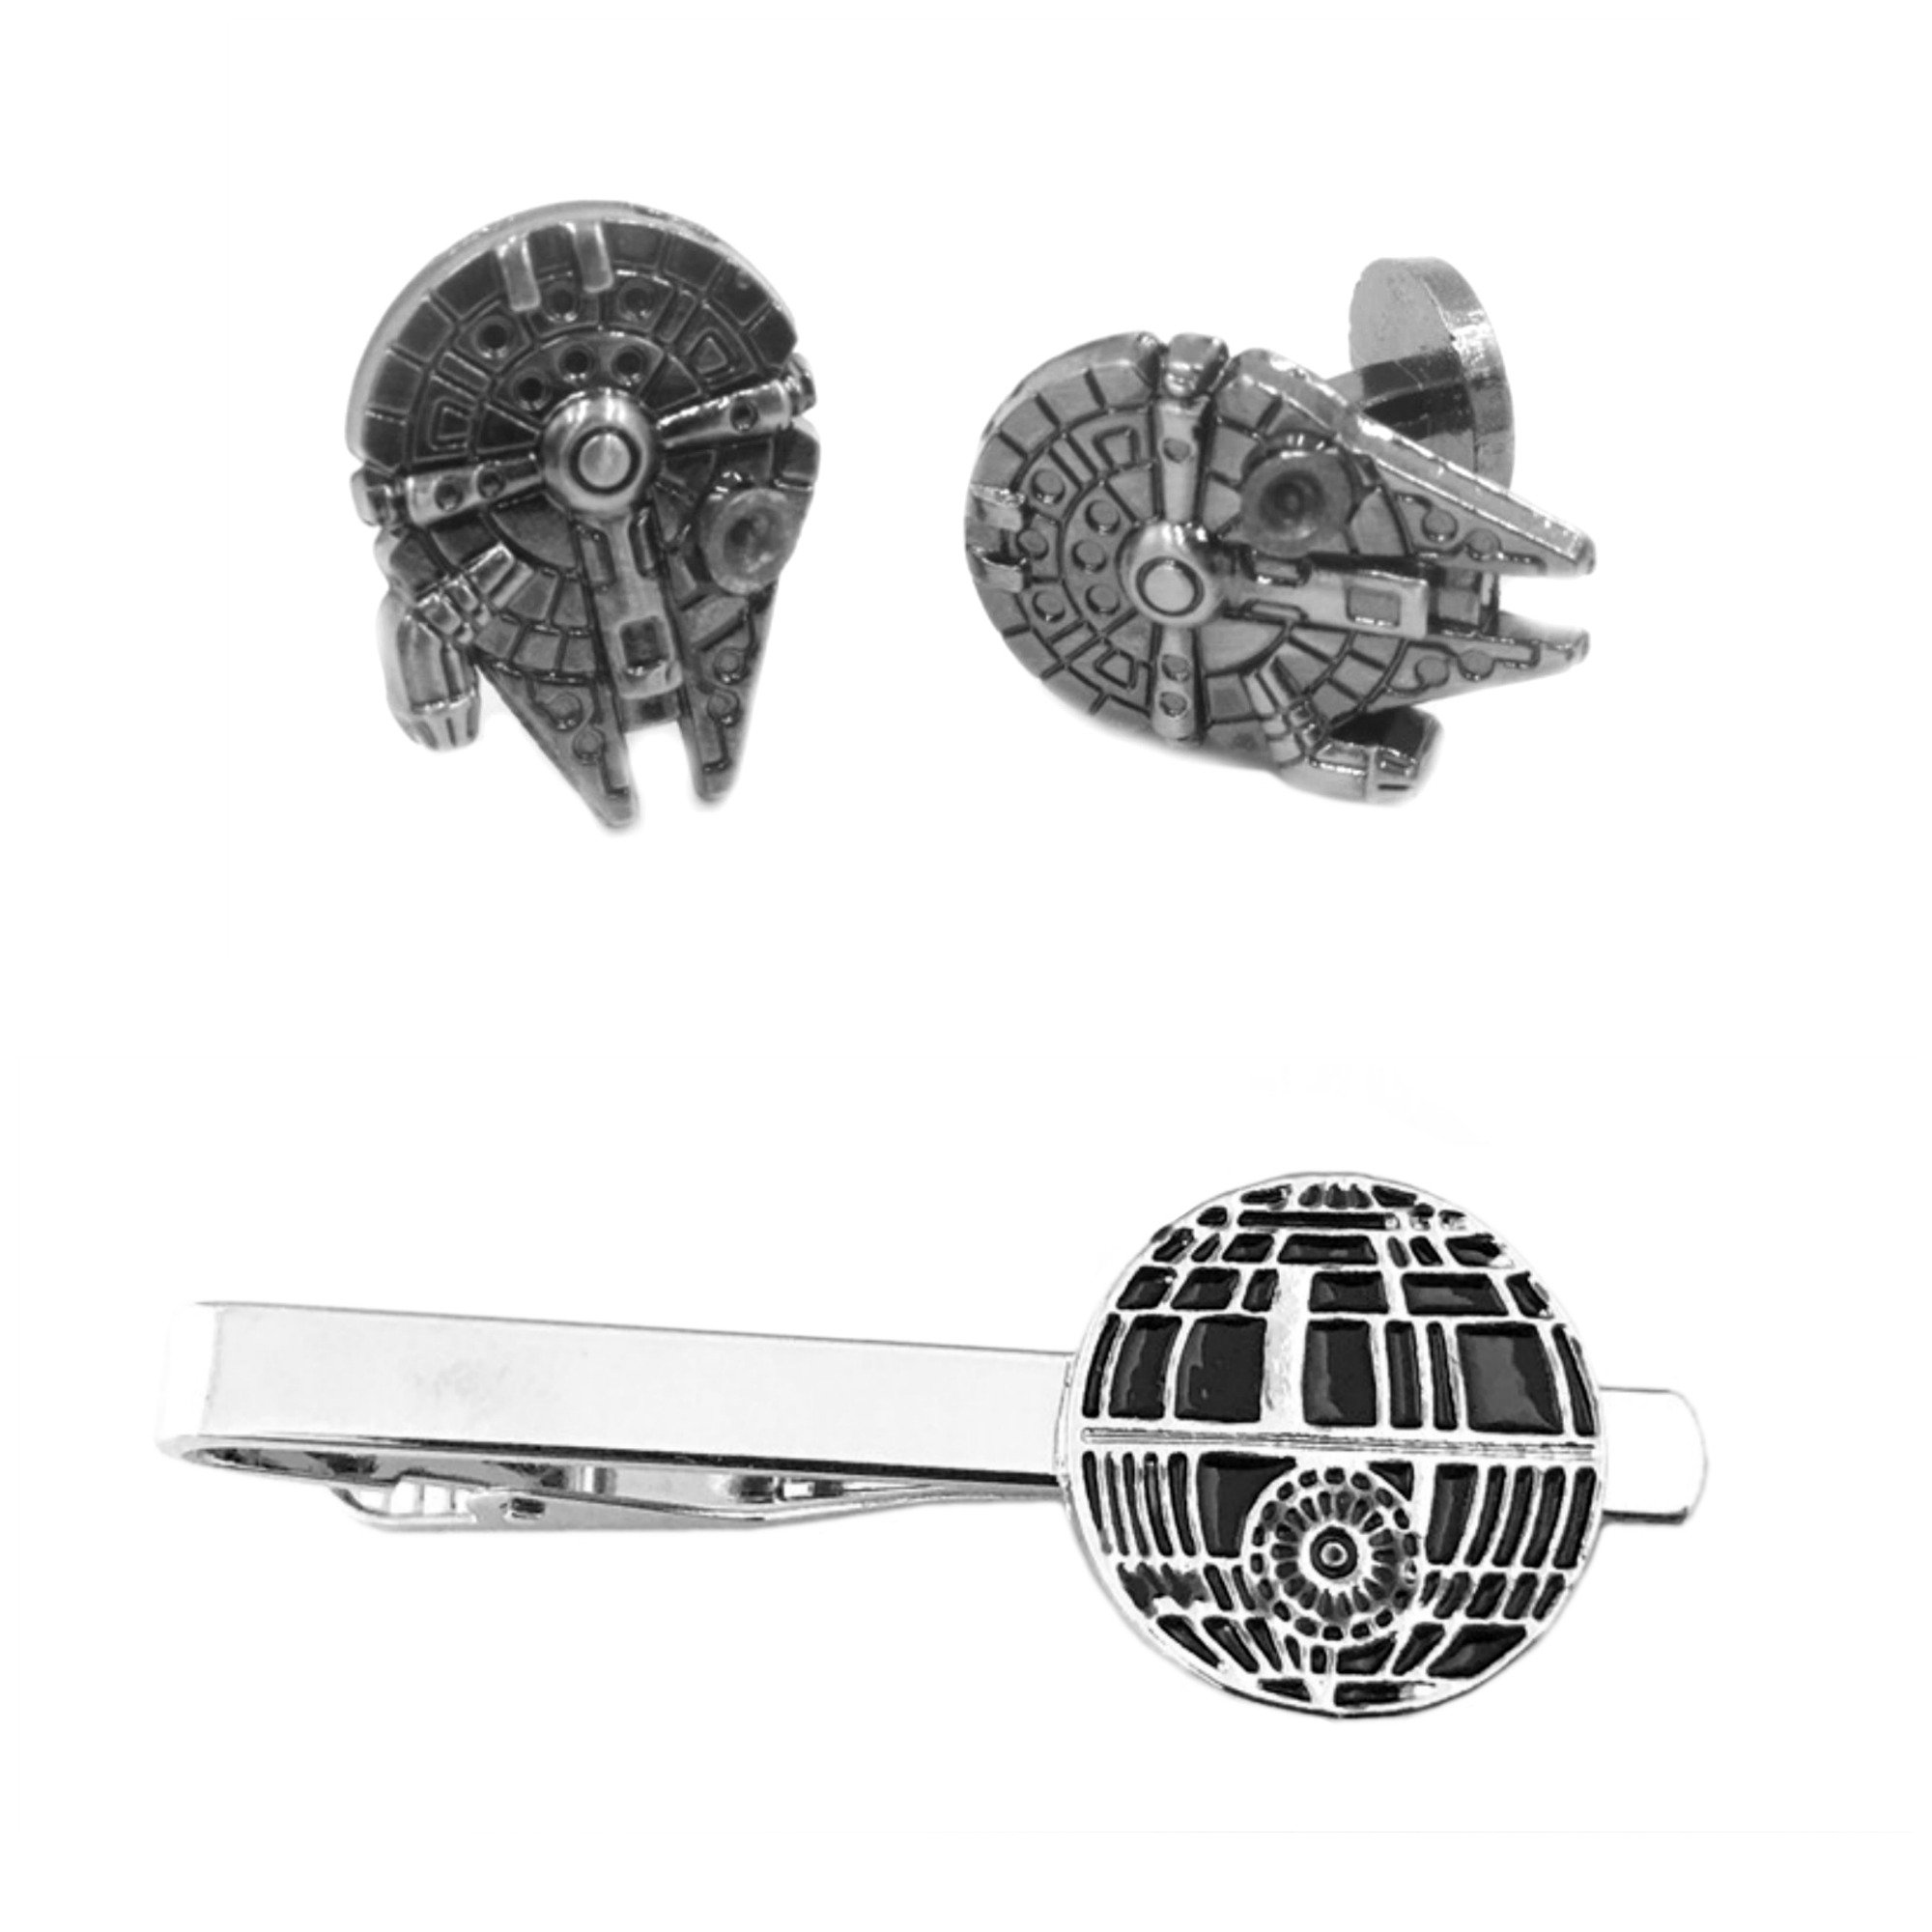 Outlander Millenium Falcon Cufflink & Death Star Tiebar - New 2018 Star Wars Movies - Set of 2 Wedding Logo w/Gift Box